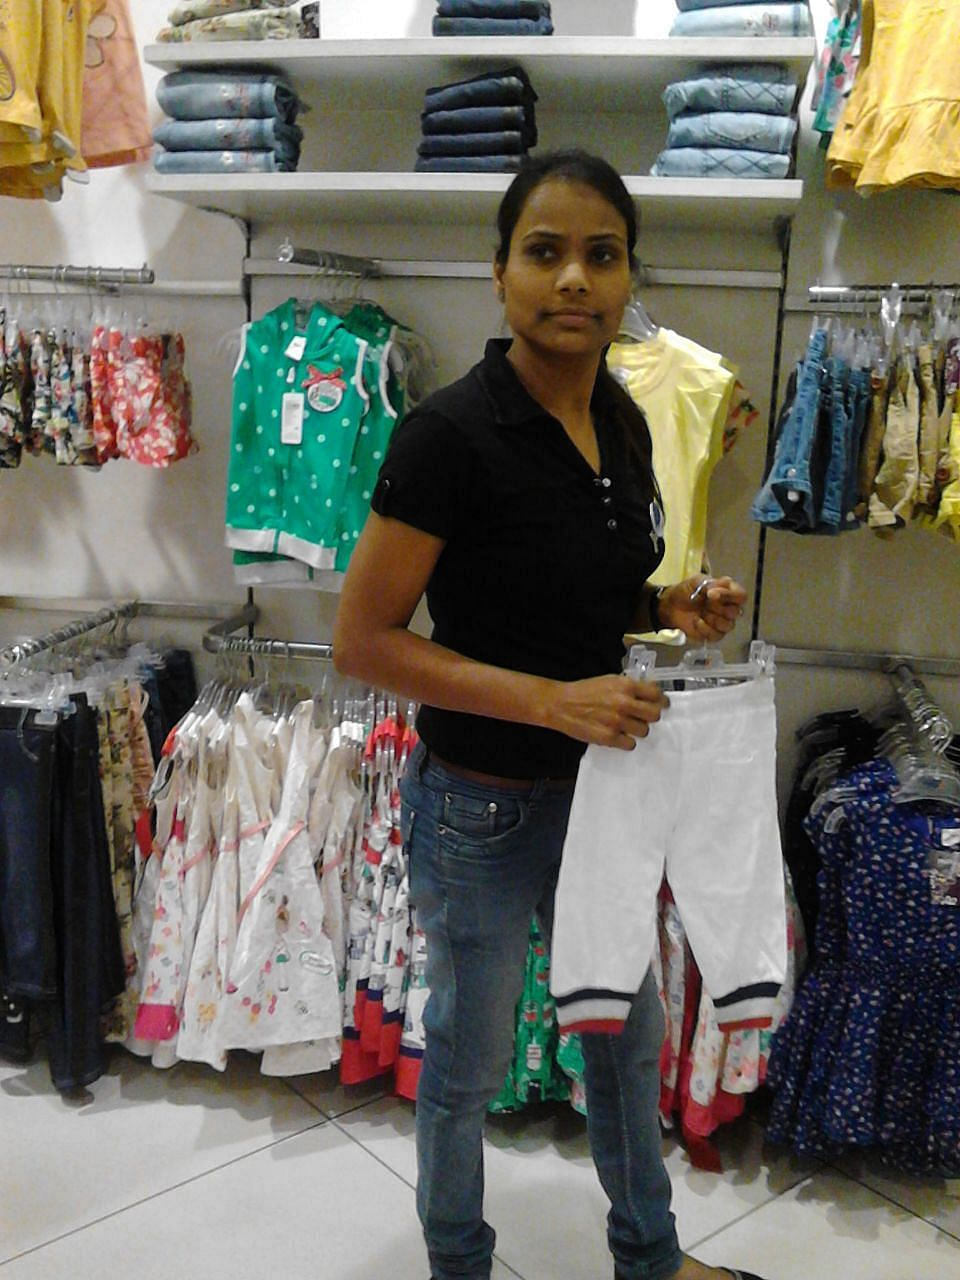 Candidate Kamla - Speech/Hearing impaired girl who has been hired by Max Stores in Jaipur